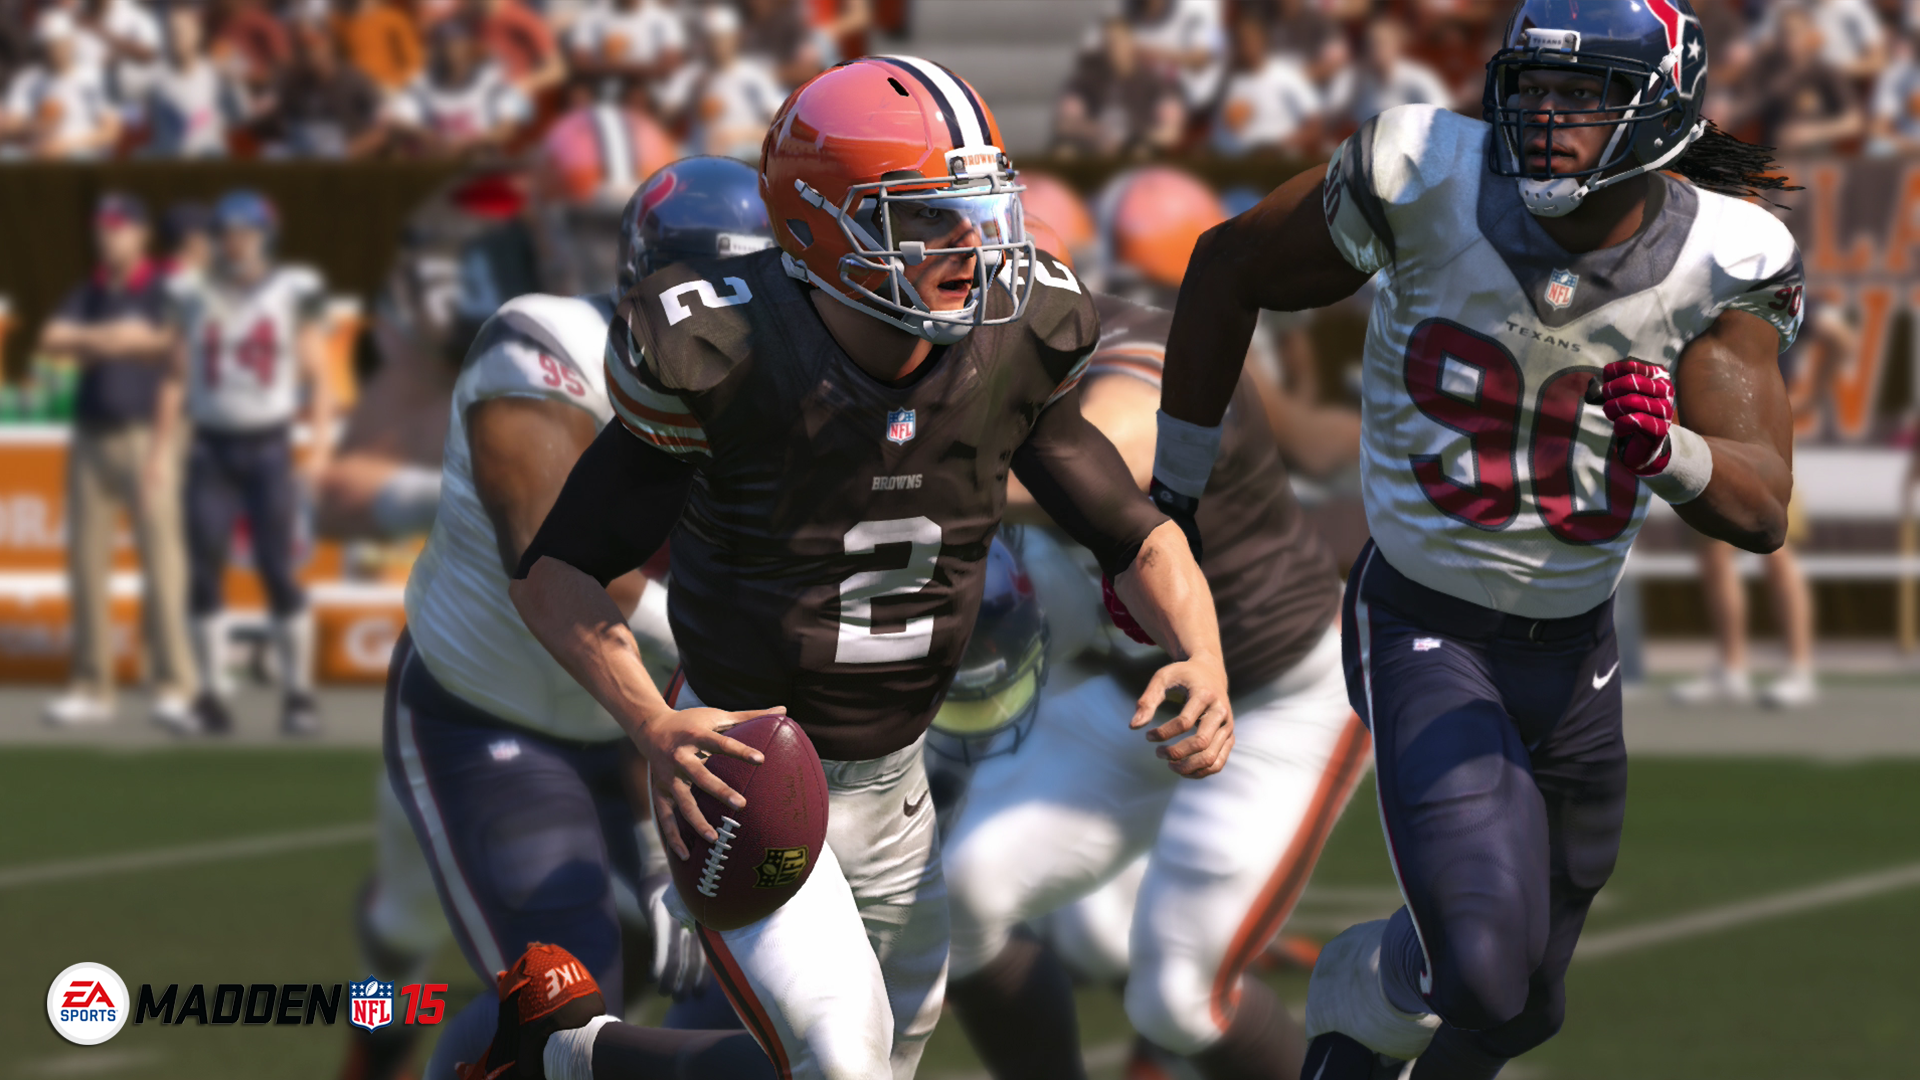 Madden-nfl-15-screen-19